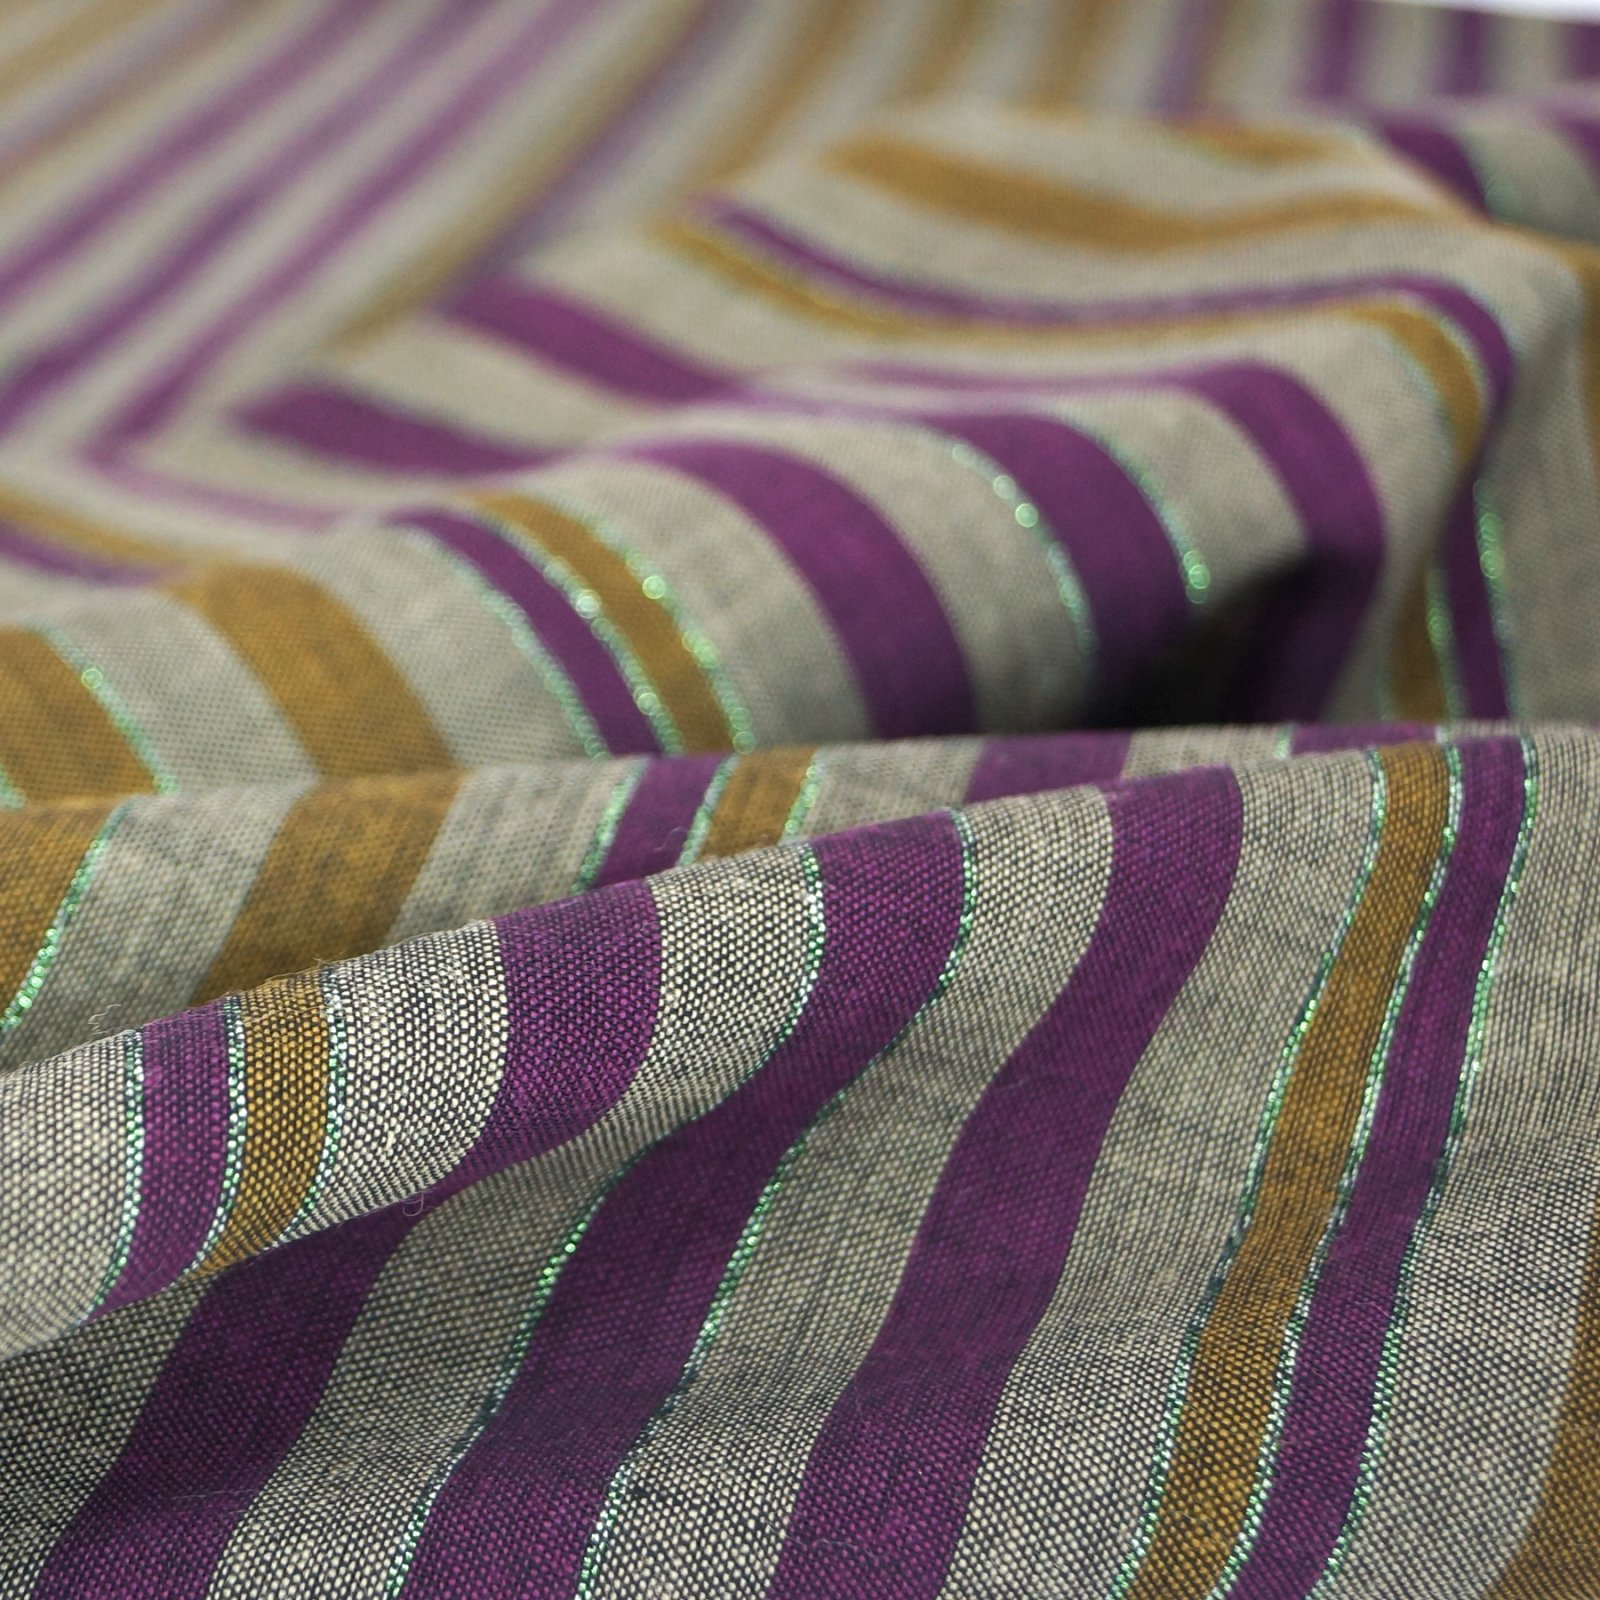 Wool - Charcoal with Plum, Goldenrod, and Green Lurex Stripes